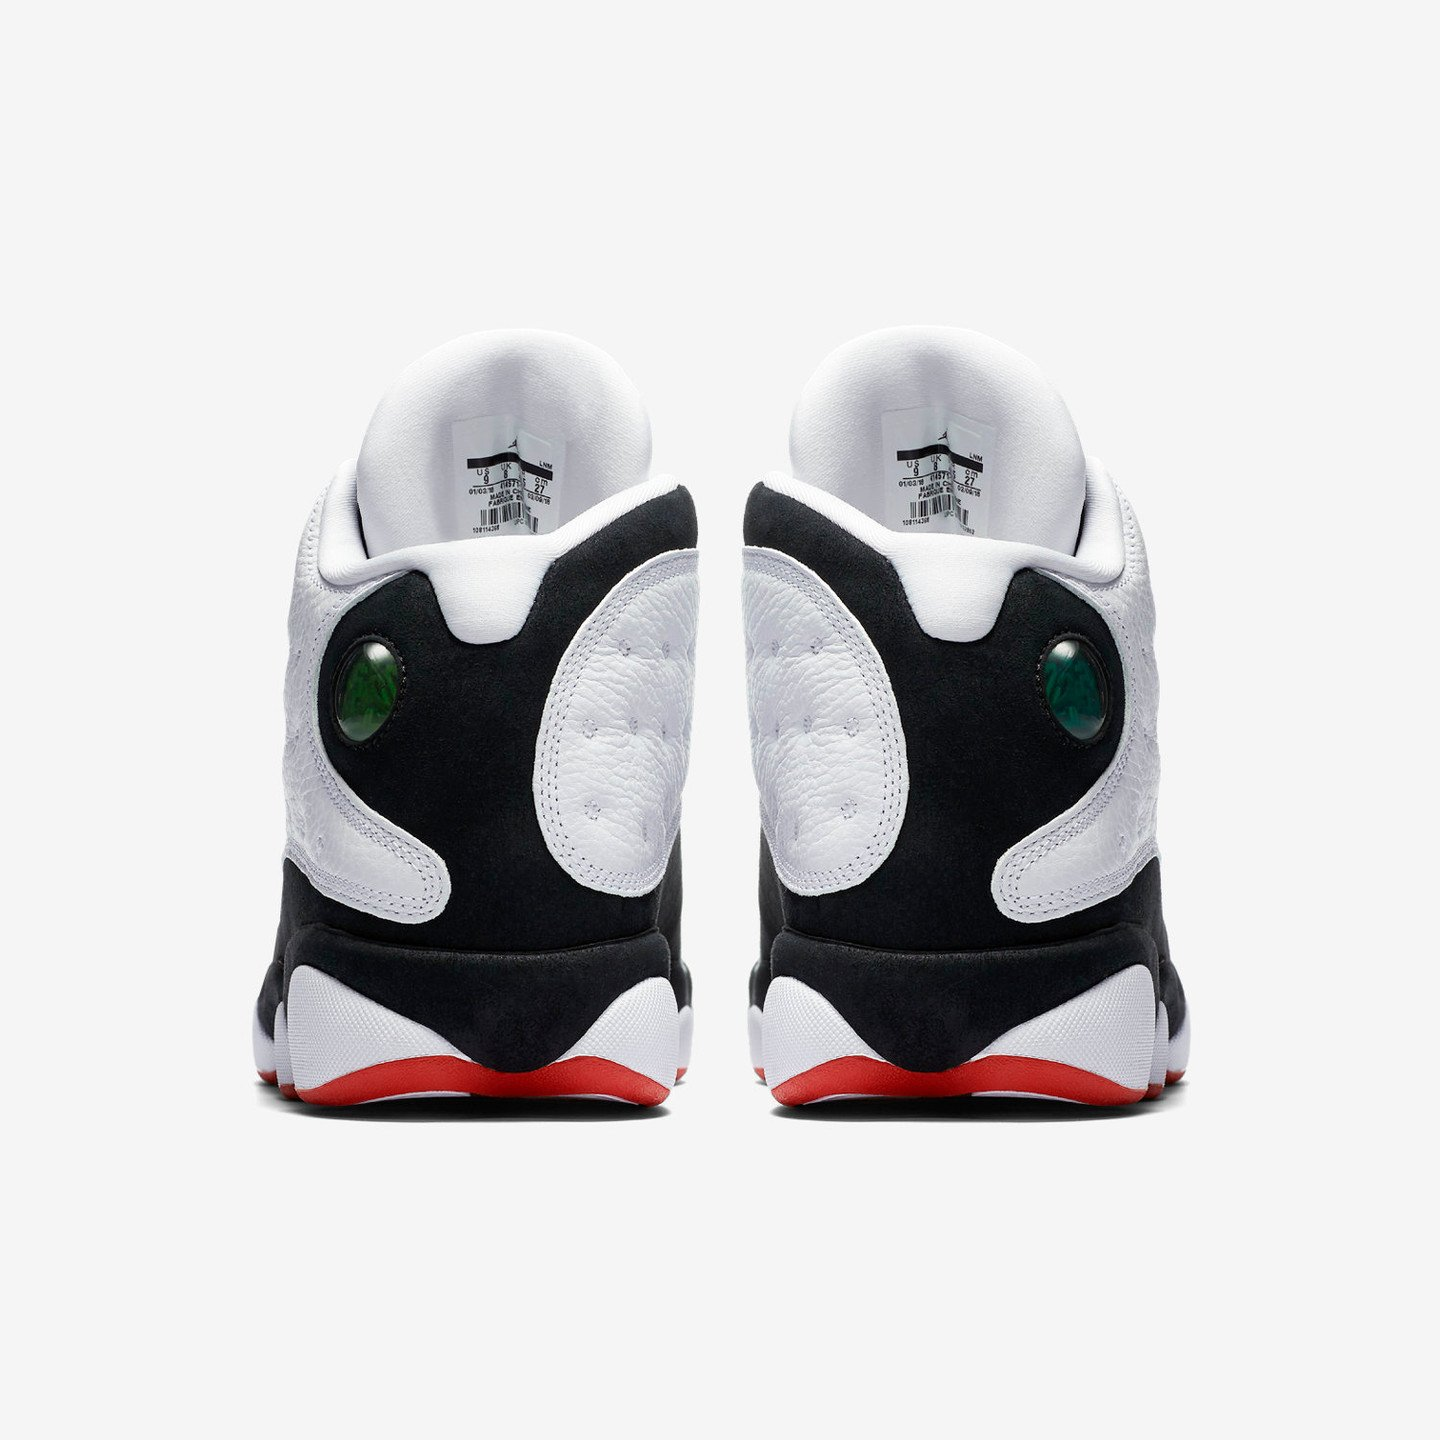 Jordan Air Jordan 13 'He Got Game' White / Black / True Red 414571-104